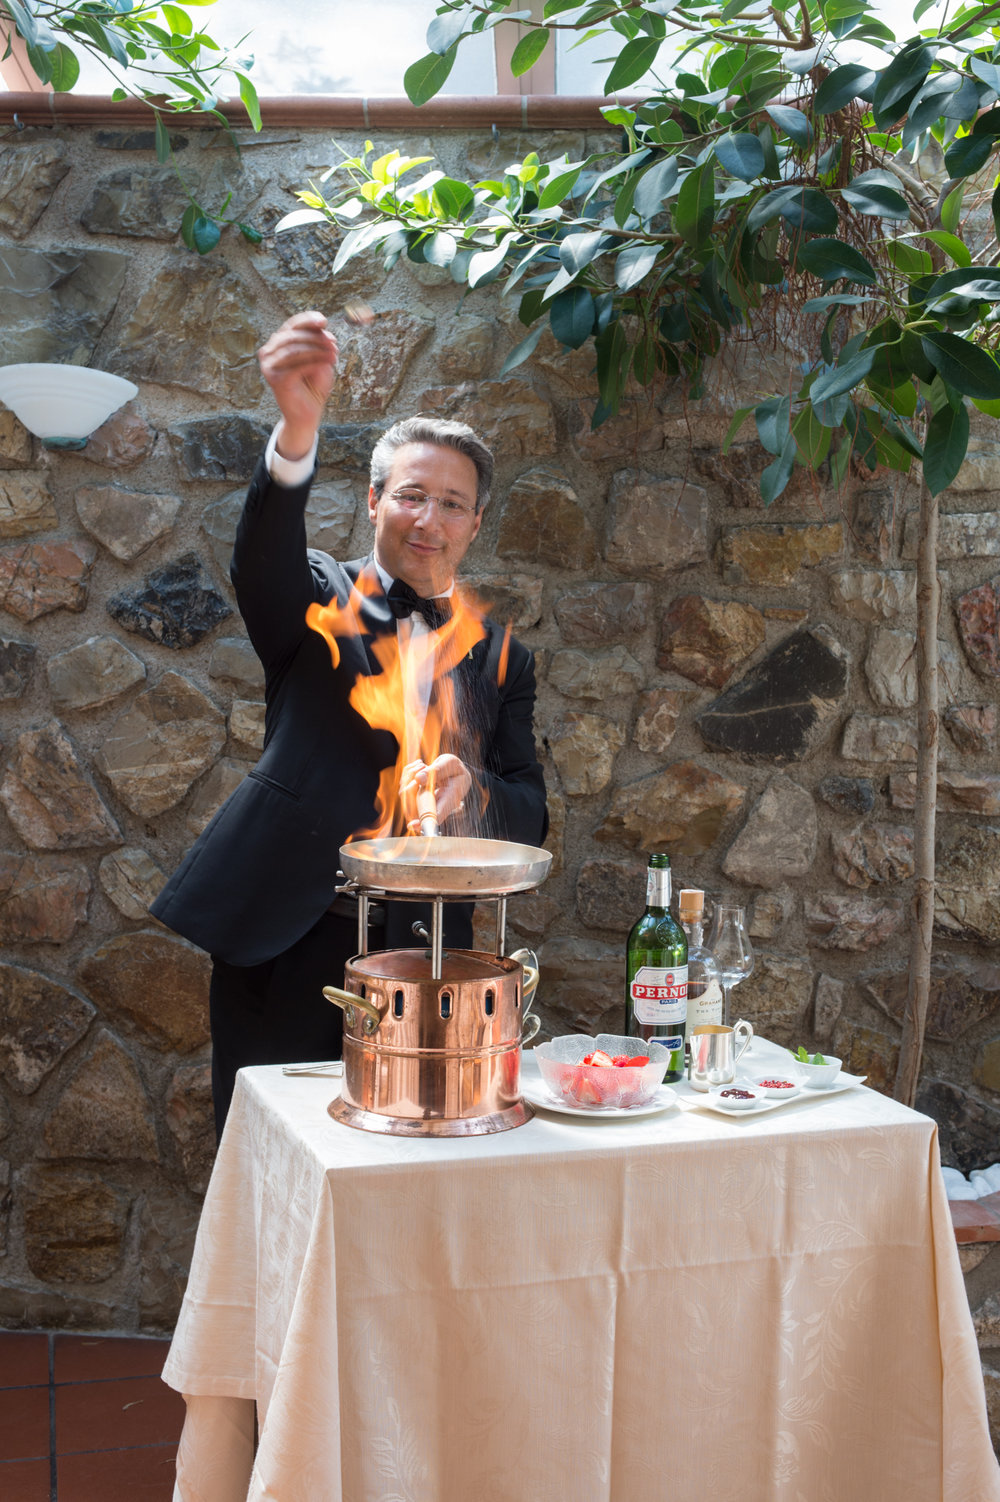 Indulge in some flambé for an evening at the Hermitage